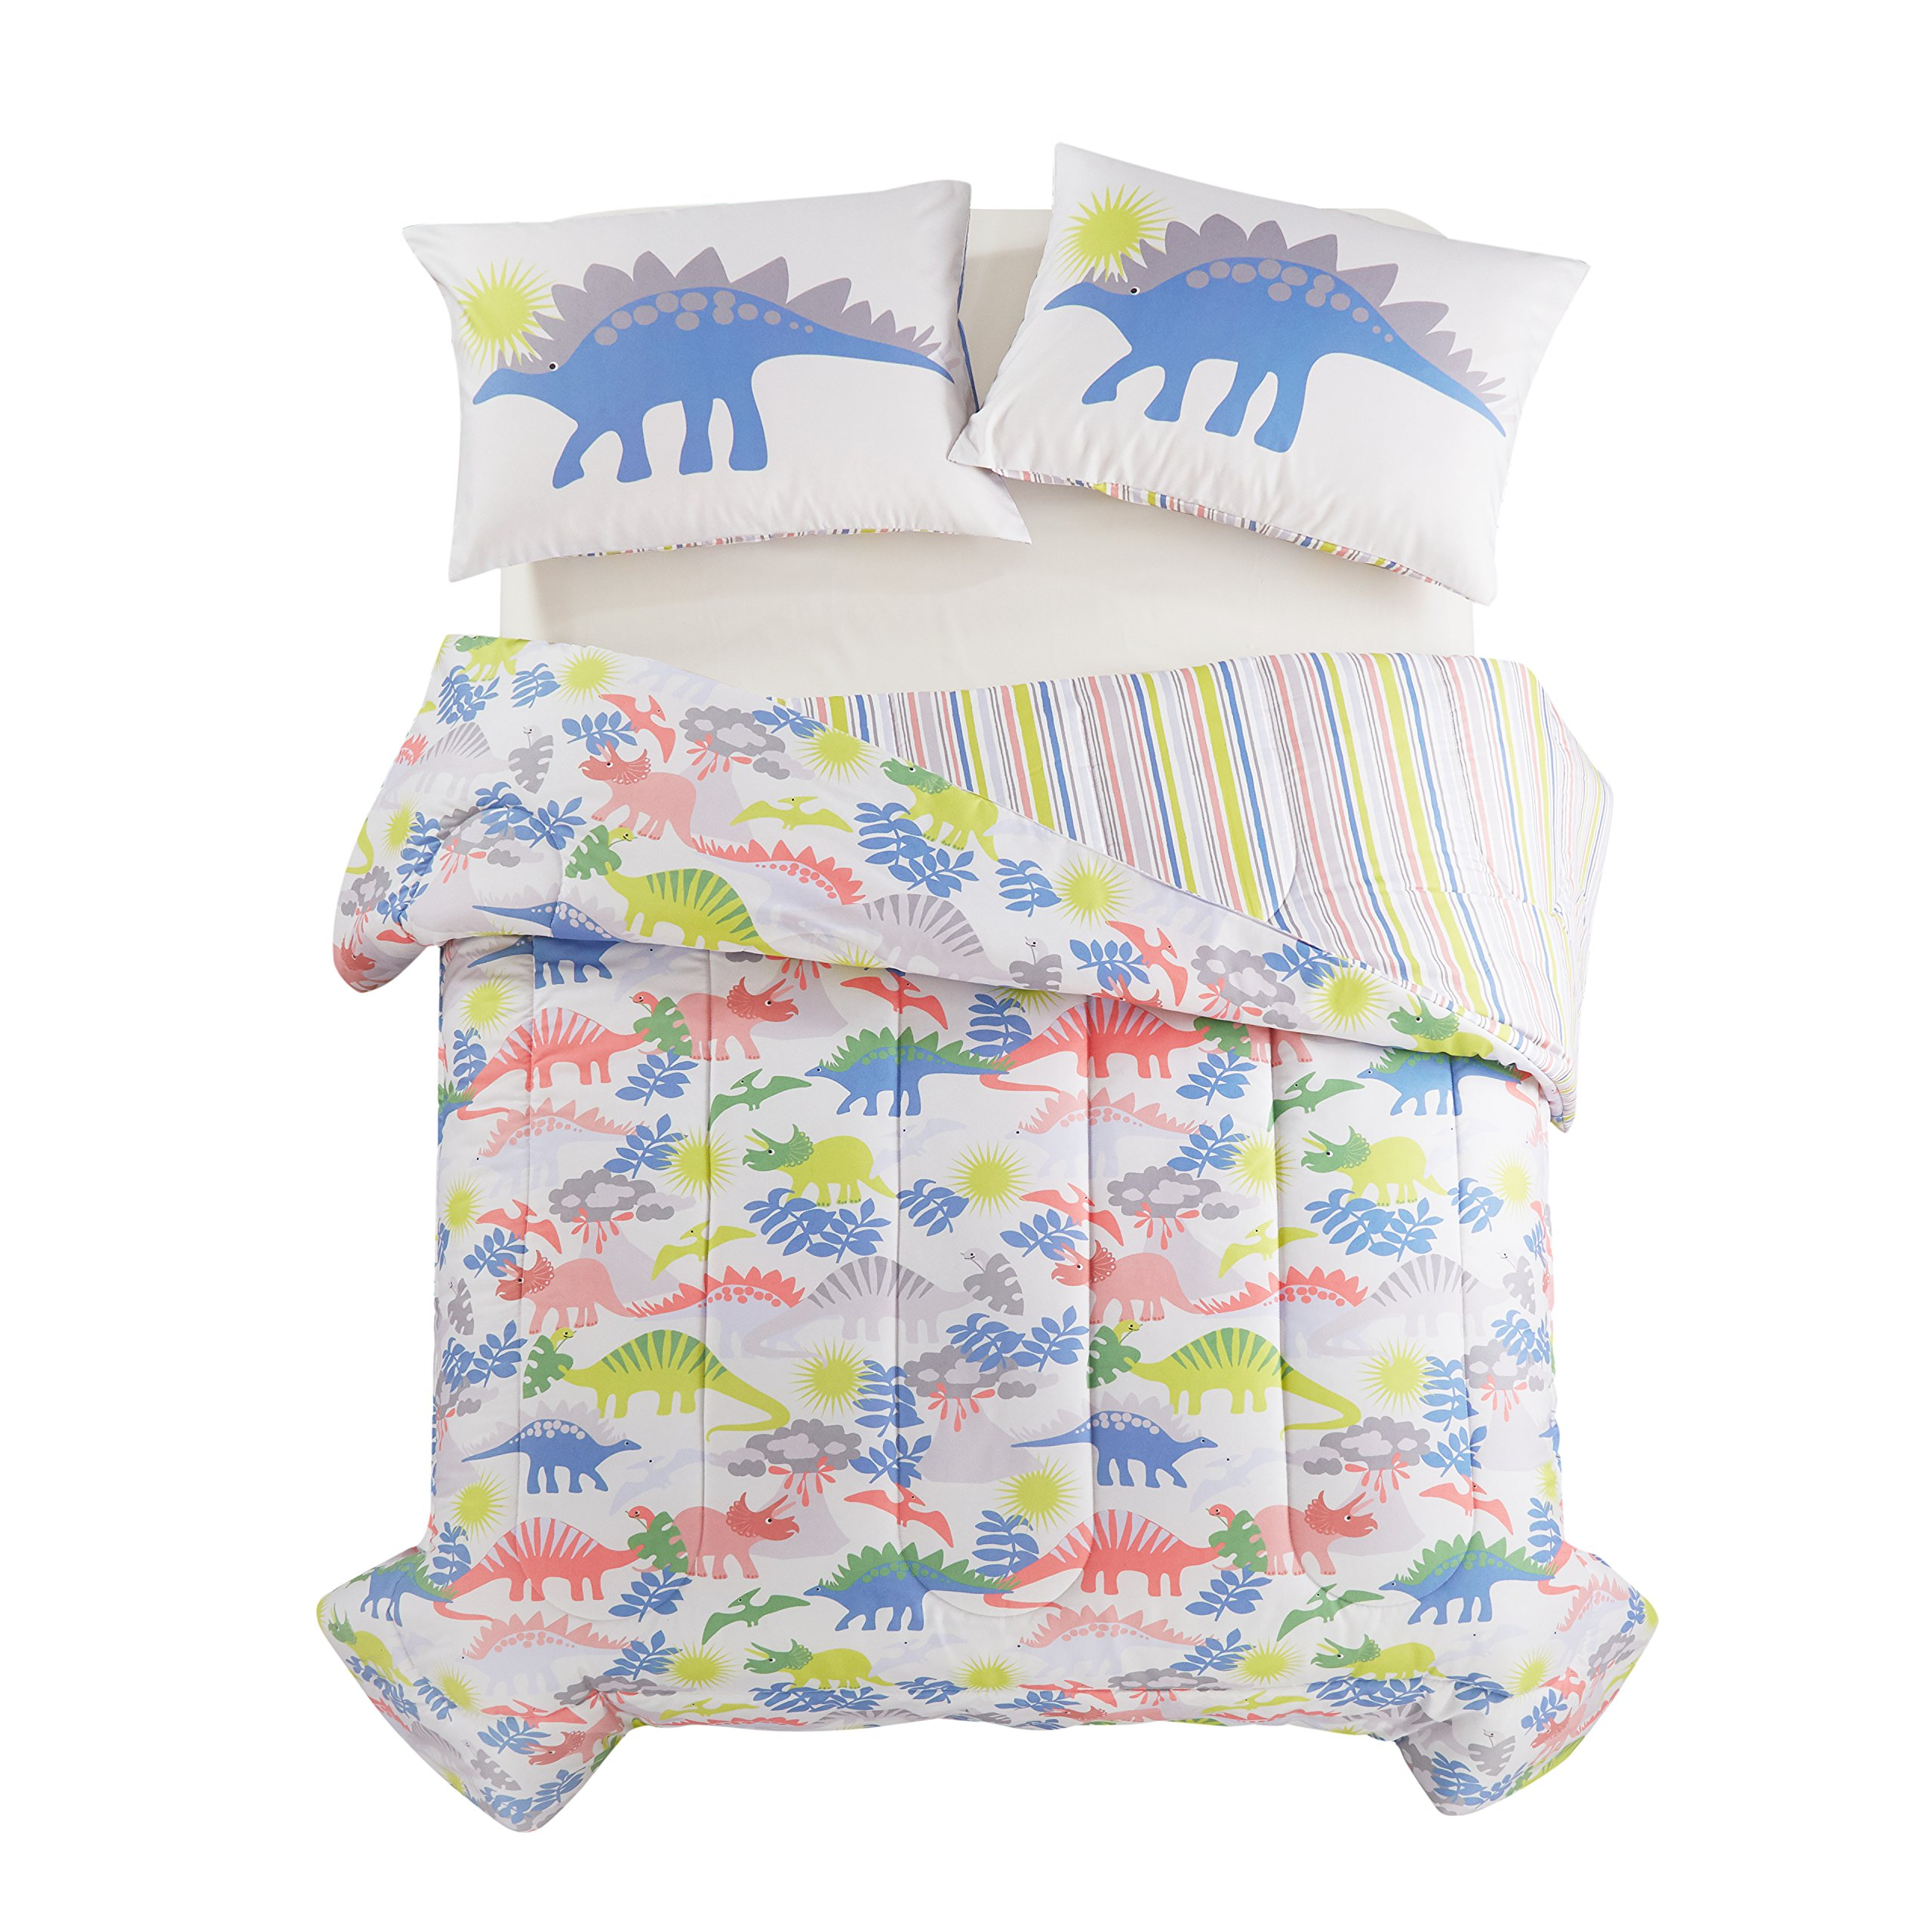 Heritage Kids Dino Roar Bed in a Bag, Multi, Full